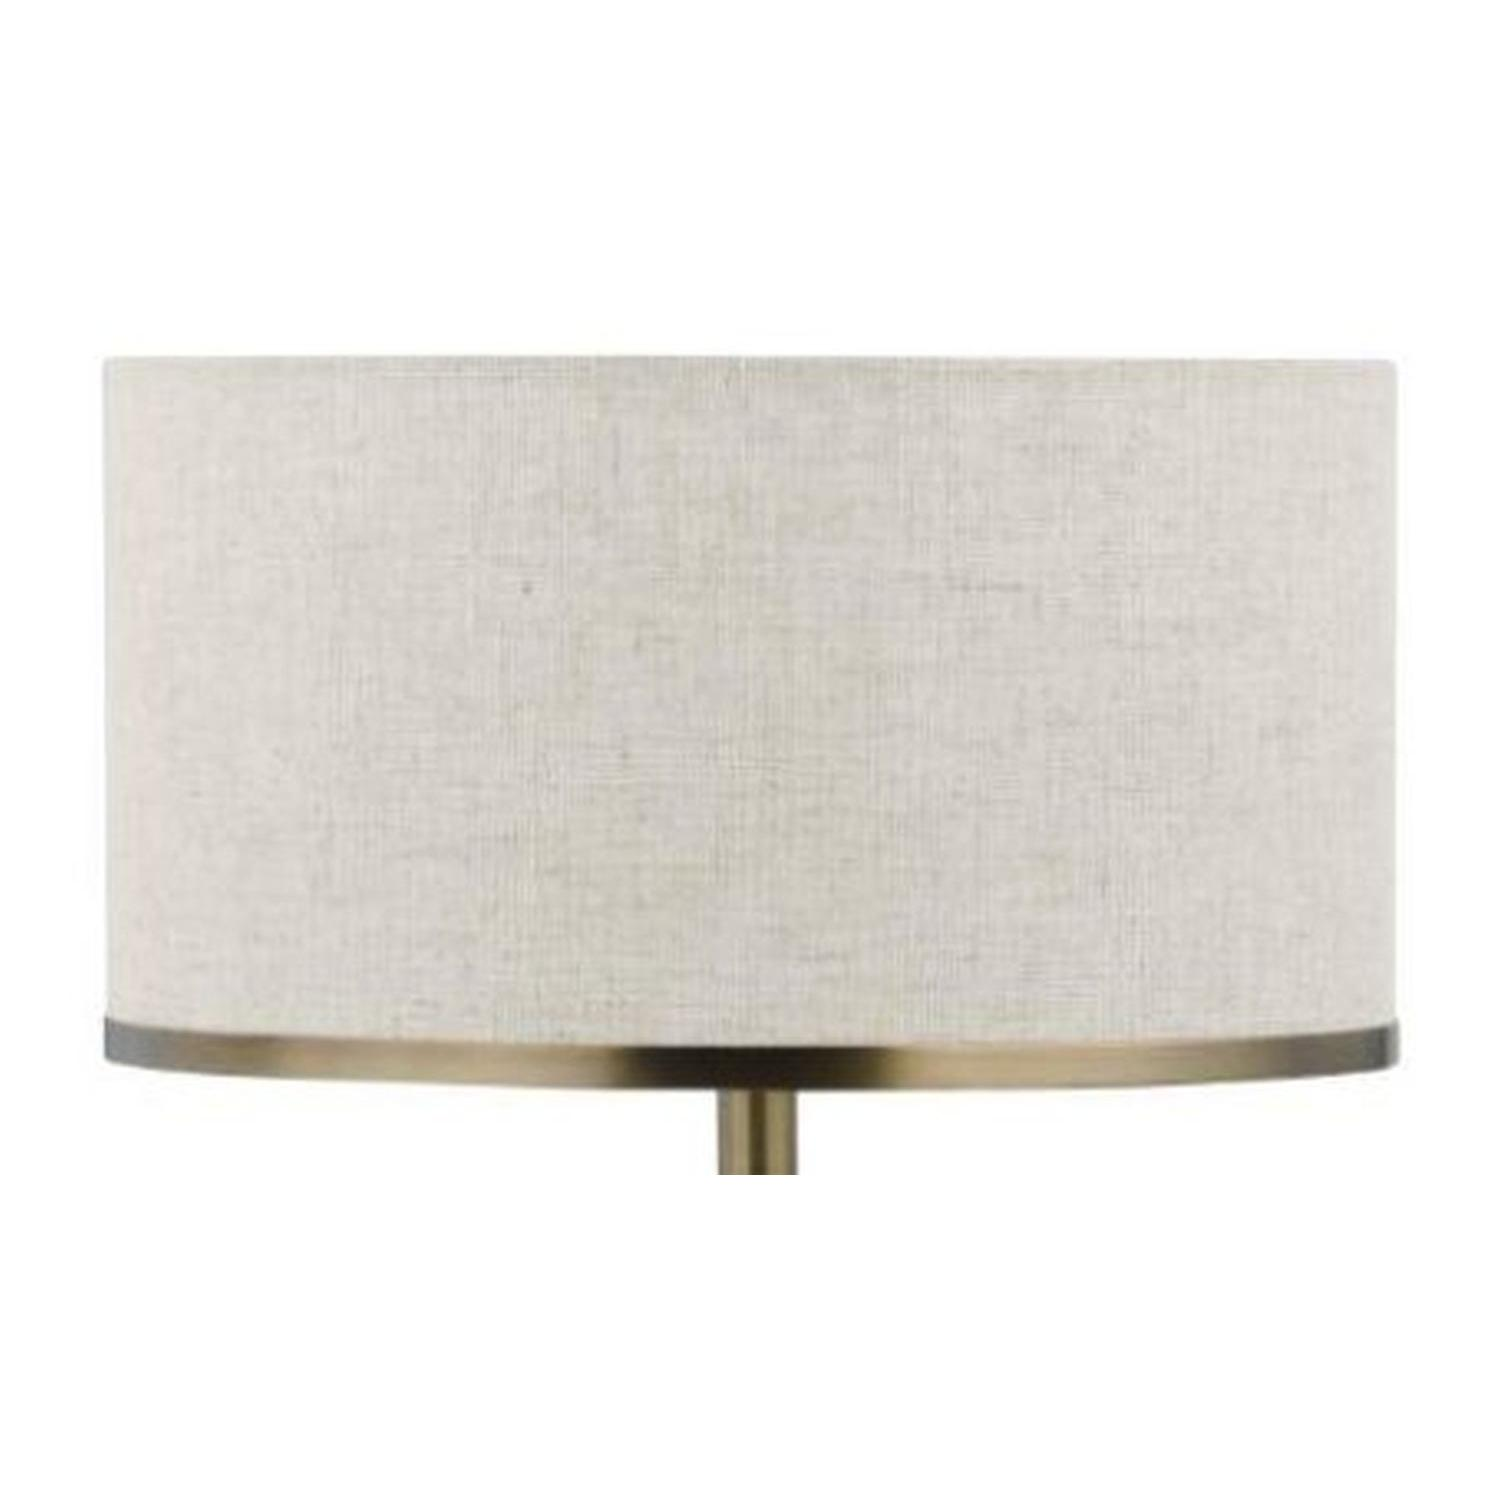 Table Lamp w/ Perpendicular Lines in an Architectural Frame - image-11